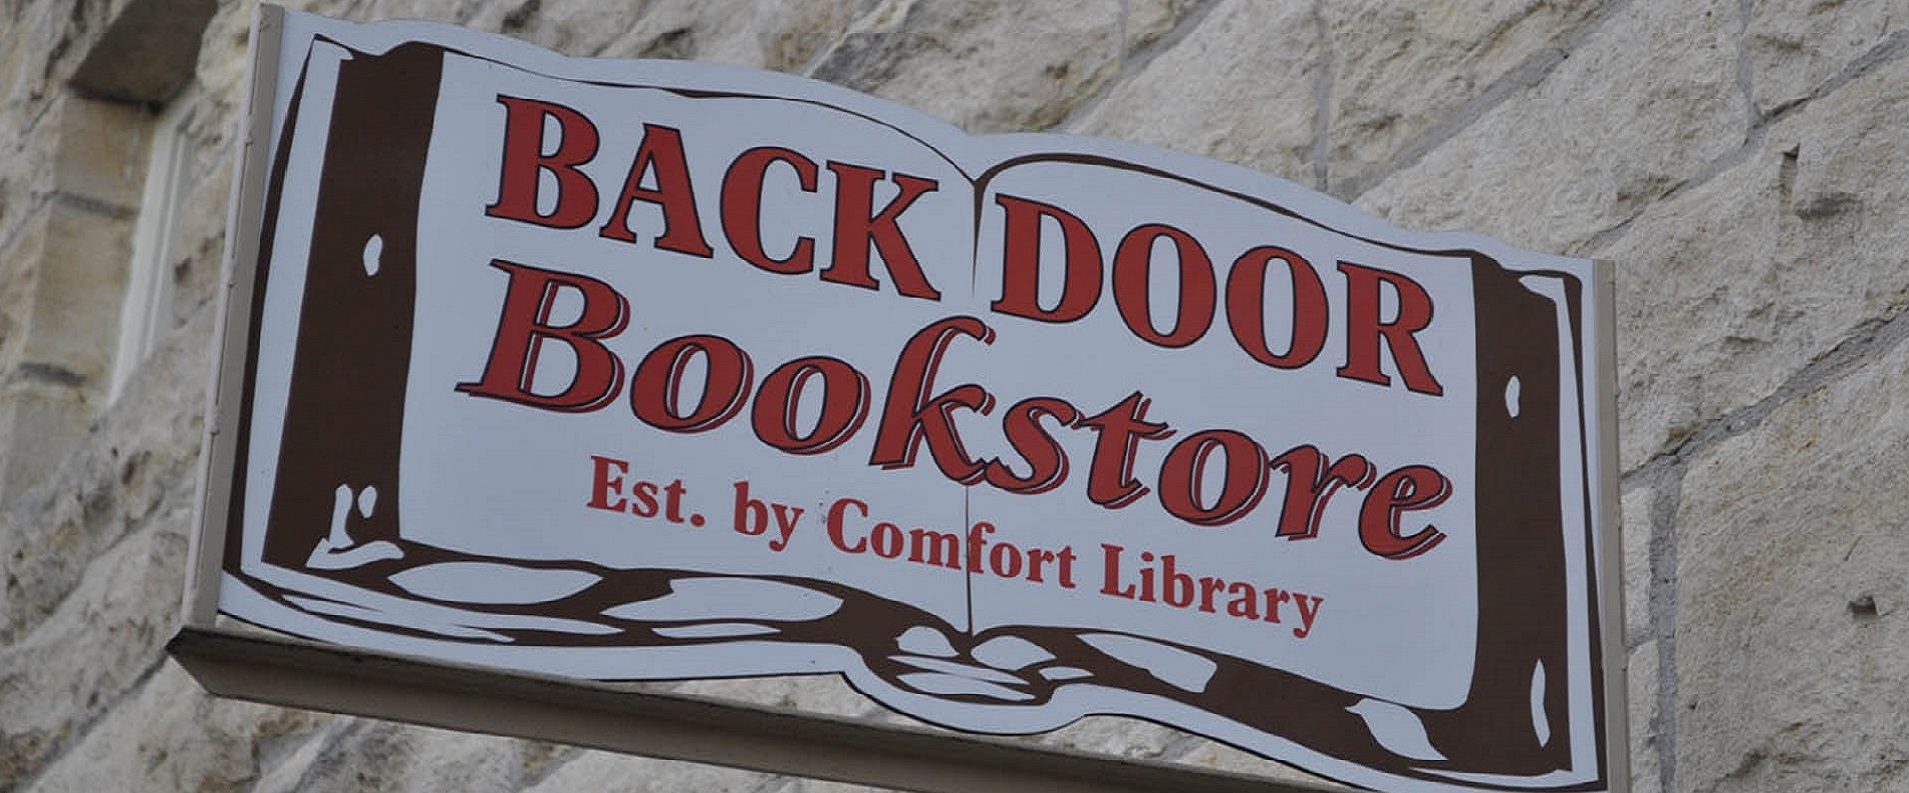 BackDoor Book Store